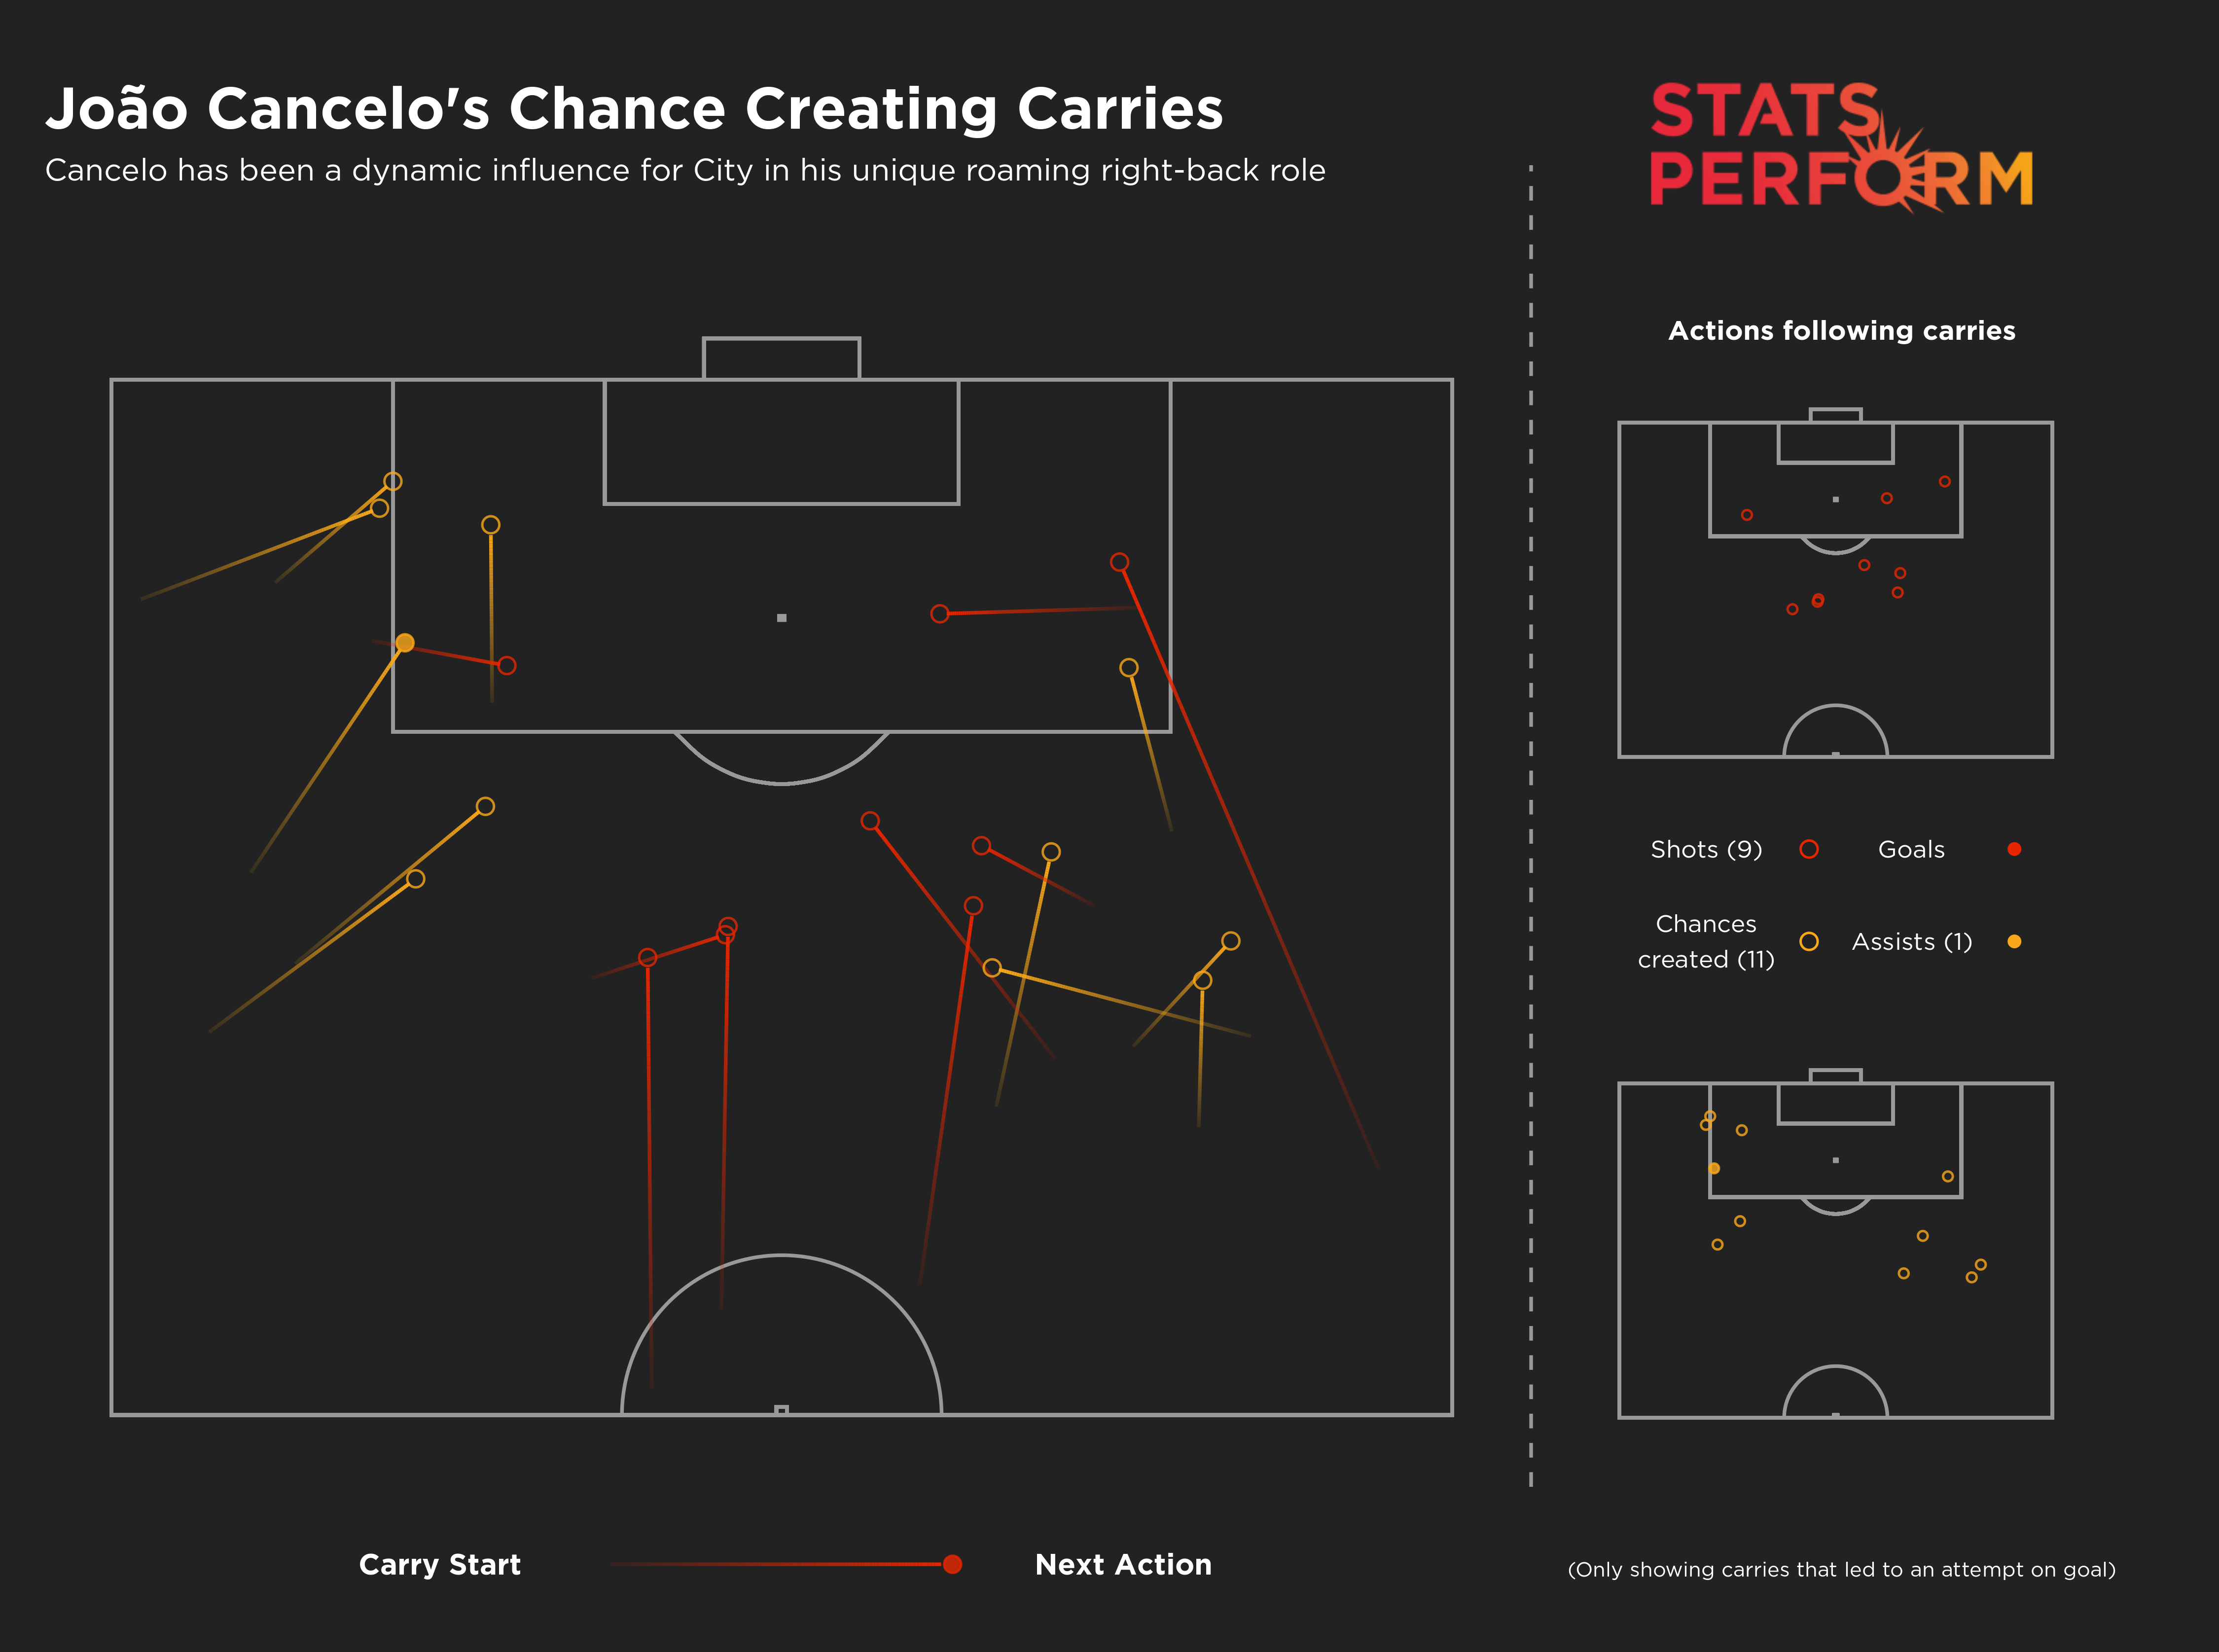 Joao Cancelo's chances created from carries in the Premier League